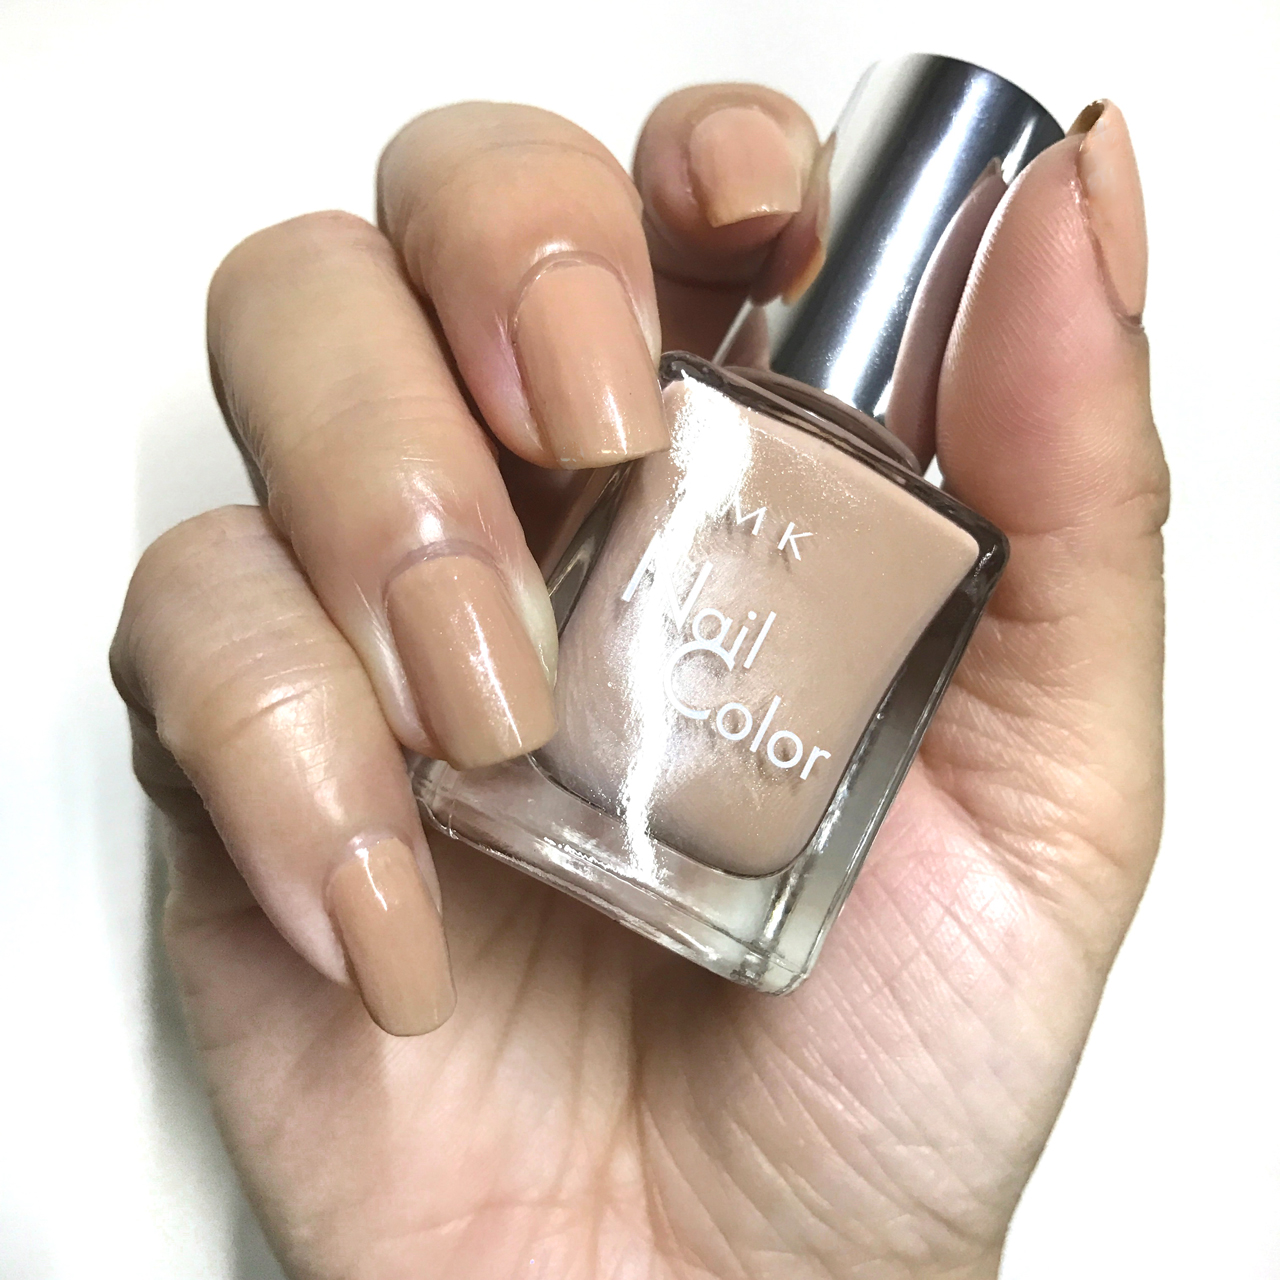 RMK Nail Color EX69 for Spring 2017